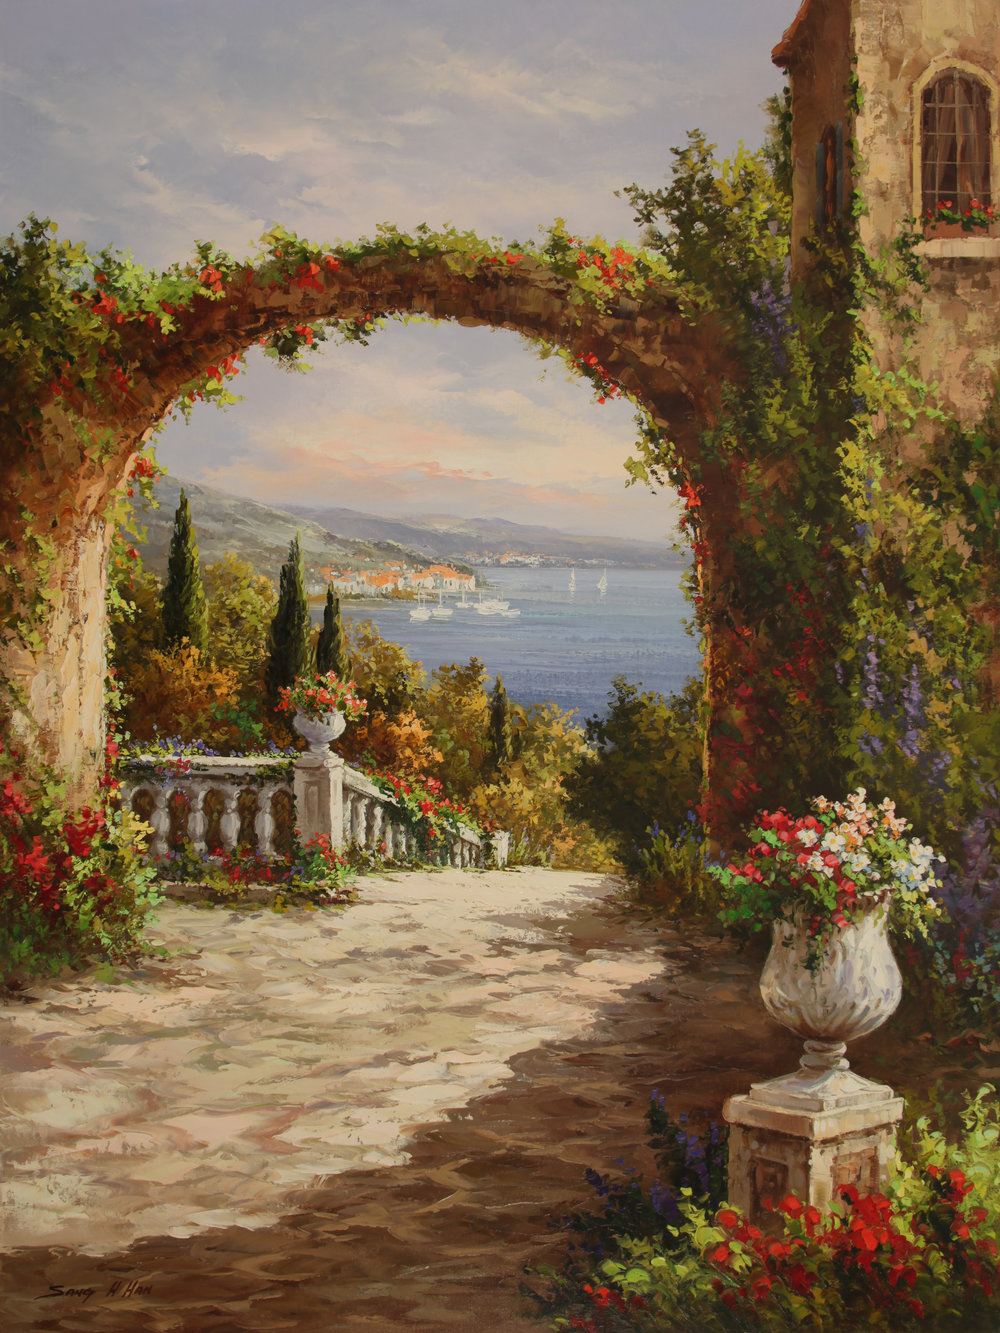 Archway to Paradise.jpg